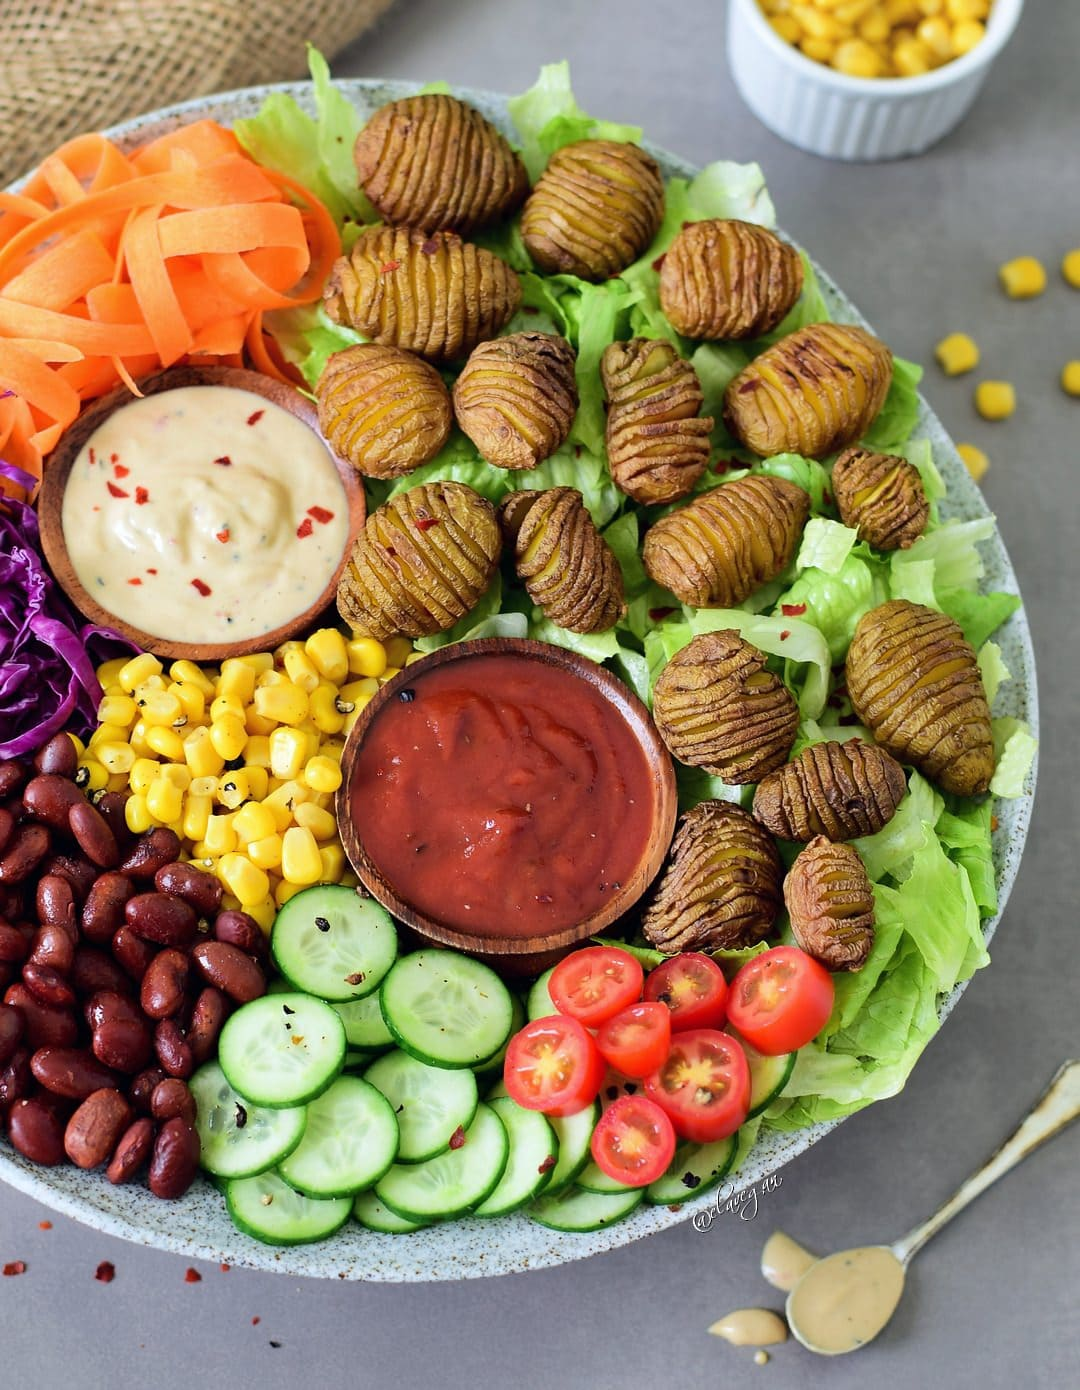 This Healthy Vegan Lunch Bowl With Hasselback Potatoes Is Filling Easy To Make And Delicious